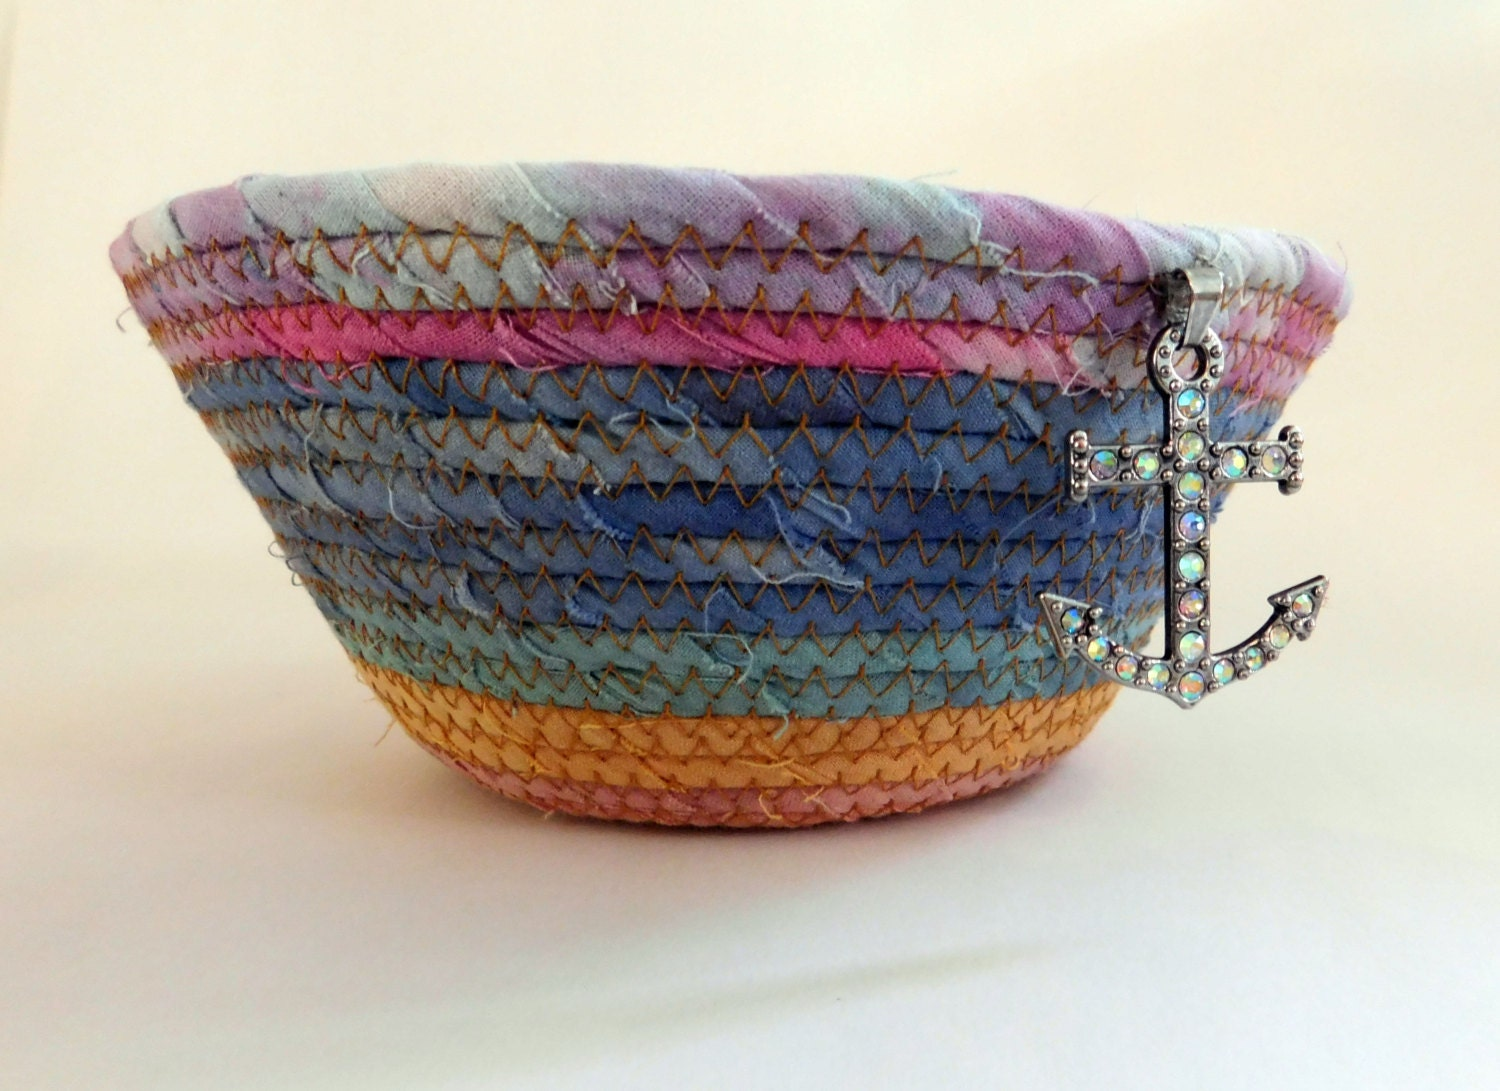 Handmade Rope Basket : Basket fabric rope coil handmade by lauraloxley